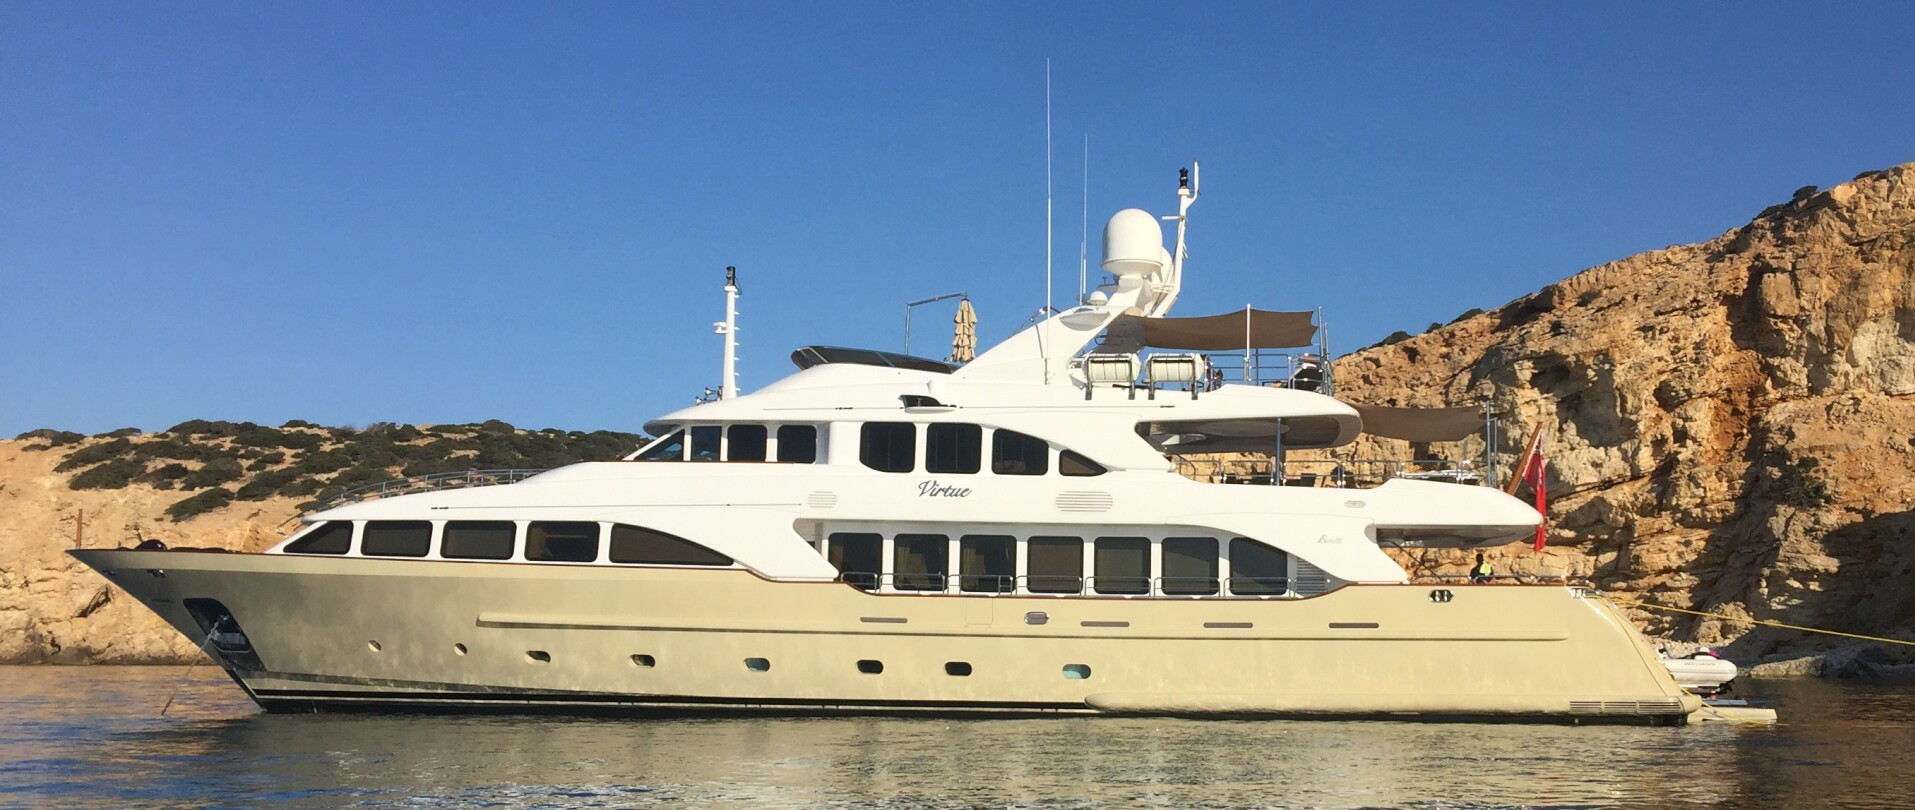 Virtue - Now available to view in the Balearics photo 1